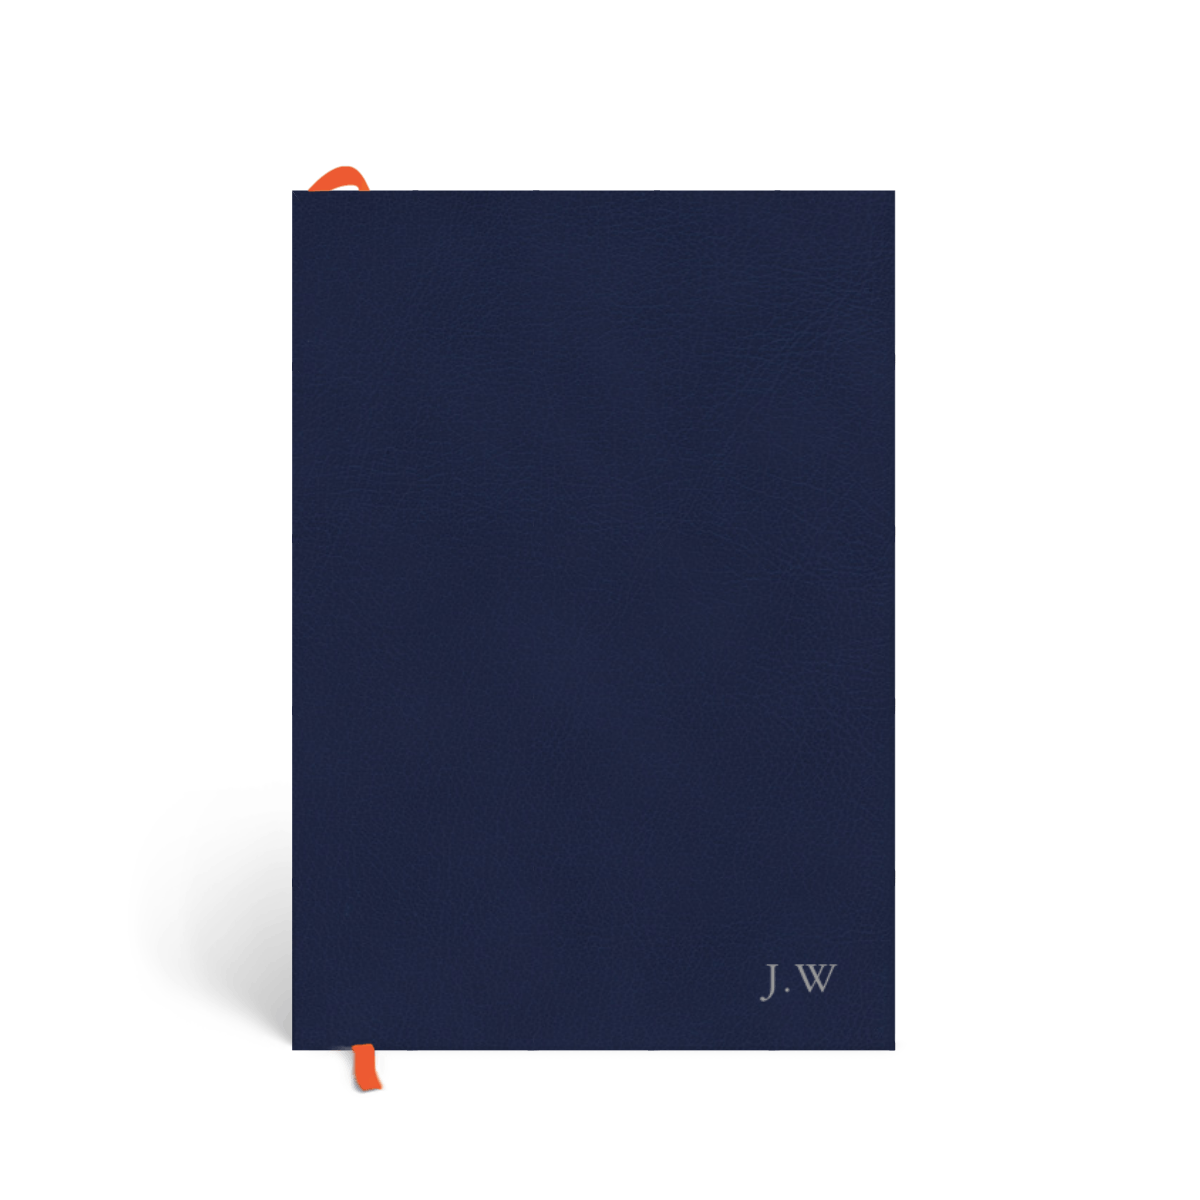 Https%3a%2f%2fwww.papier.com%2fproduct image%2f95529%2f113%2froyal blue monogram 23949 front 1573495906.png?ixlib=rb 1.1